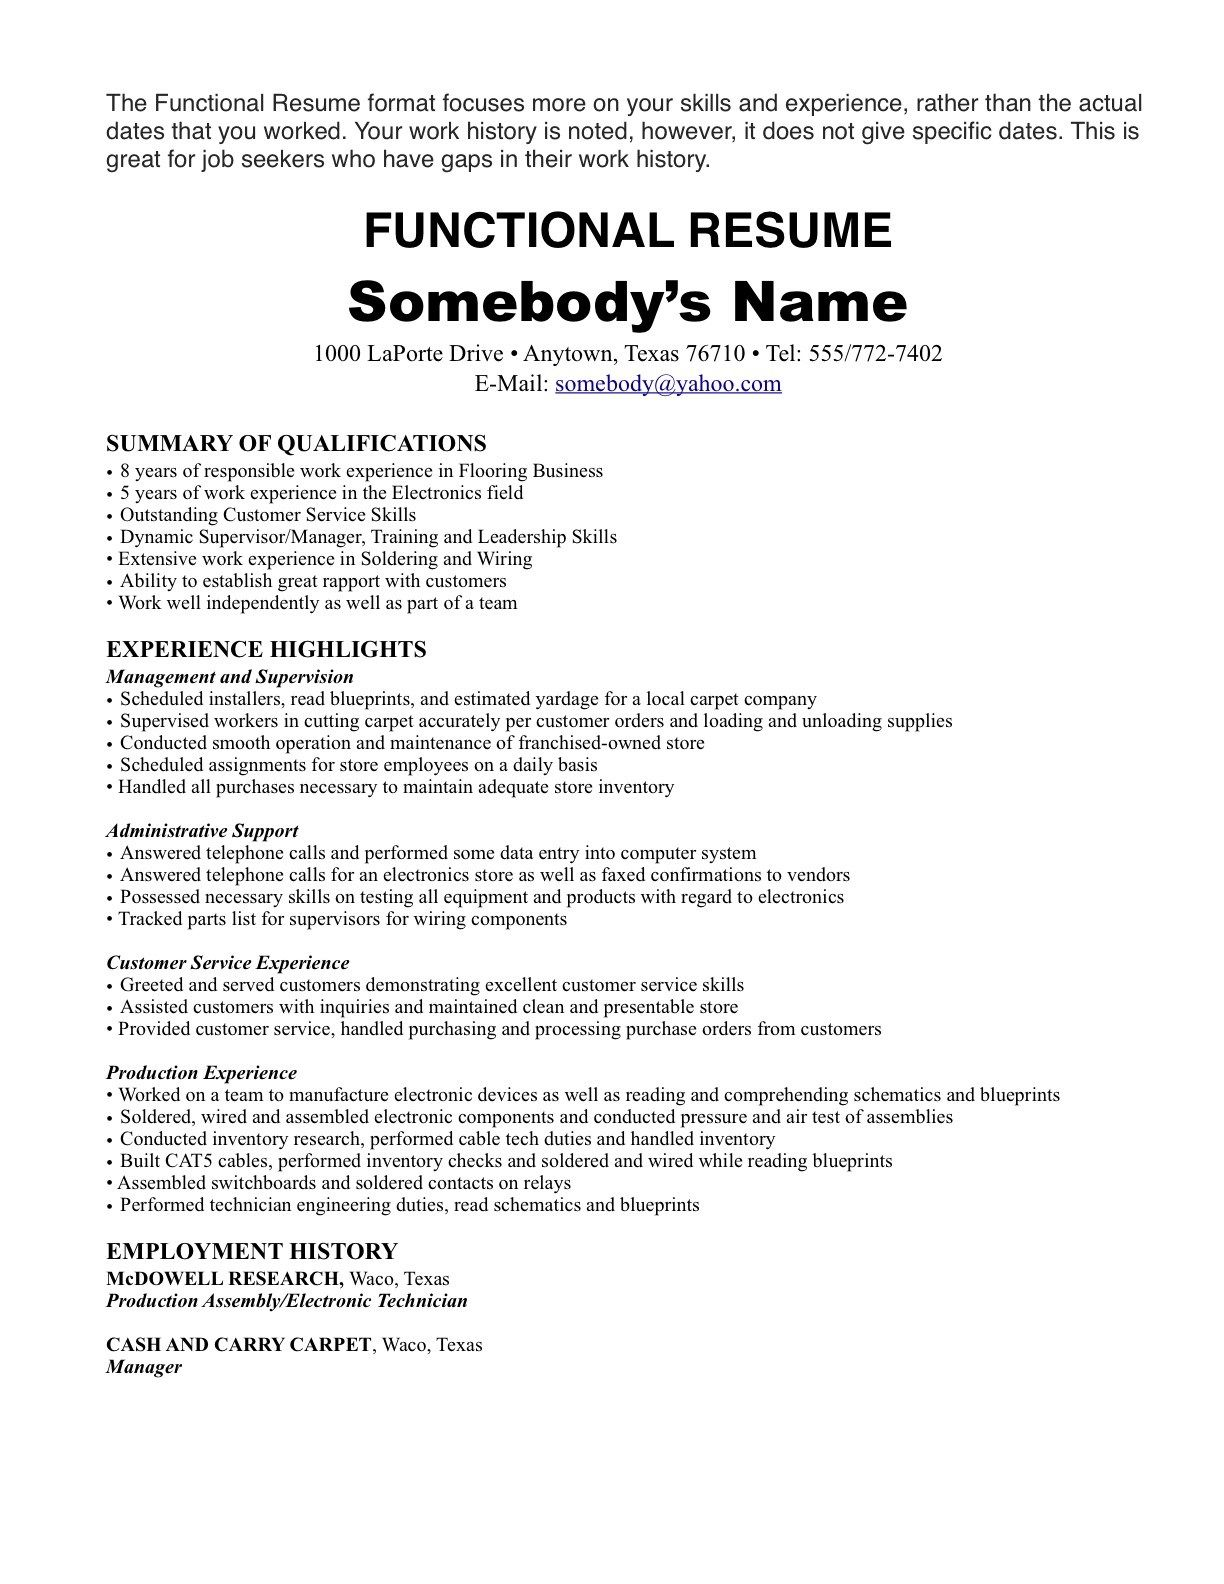 Resume Format One Job ResumeFormat